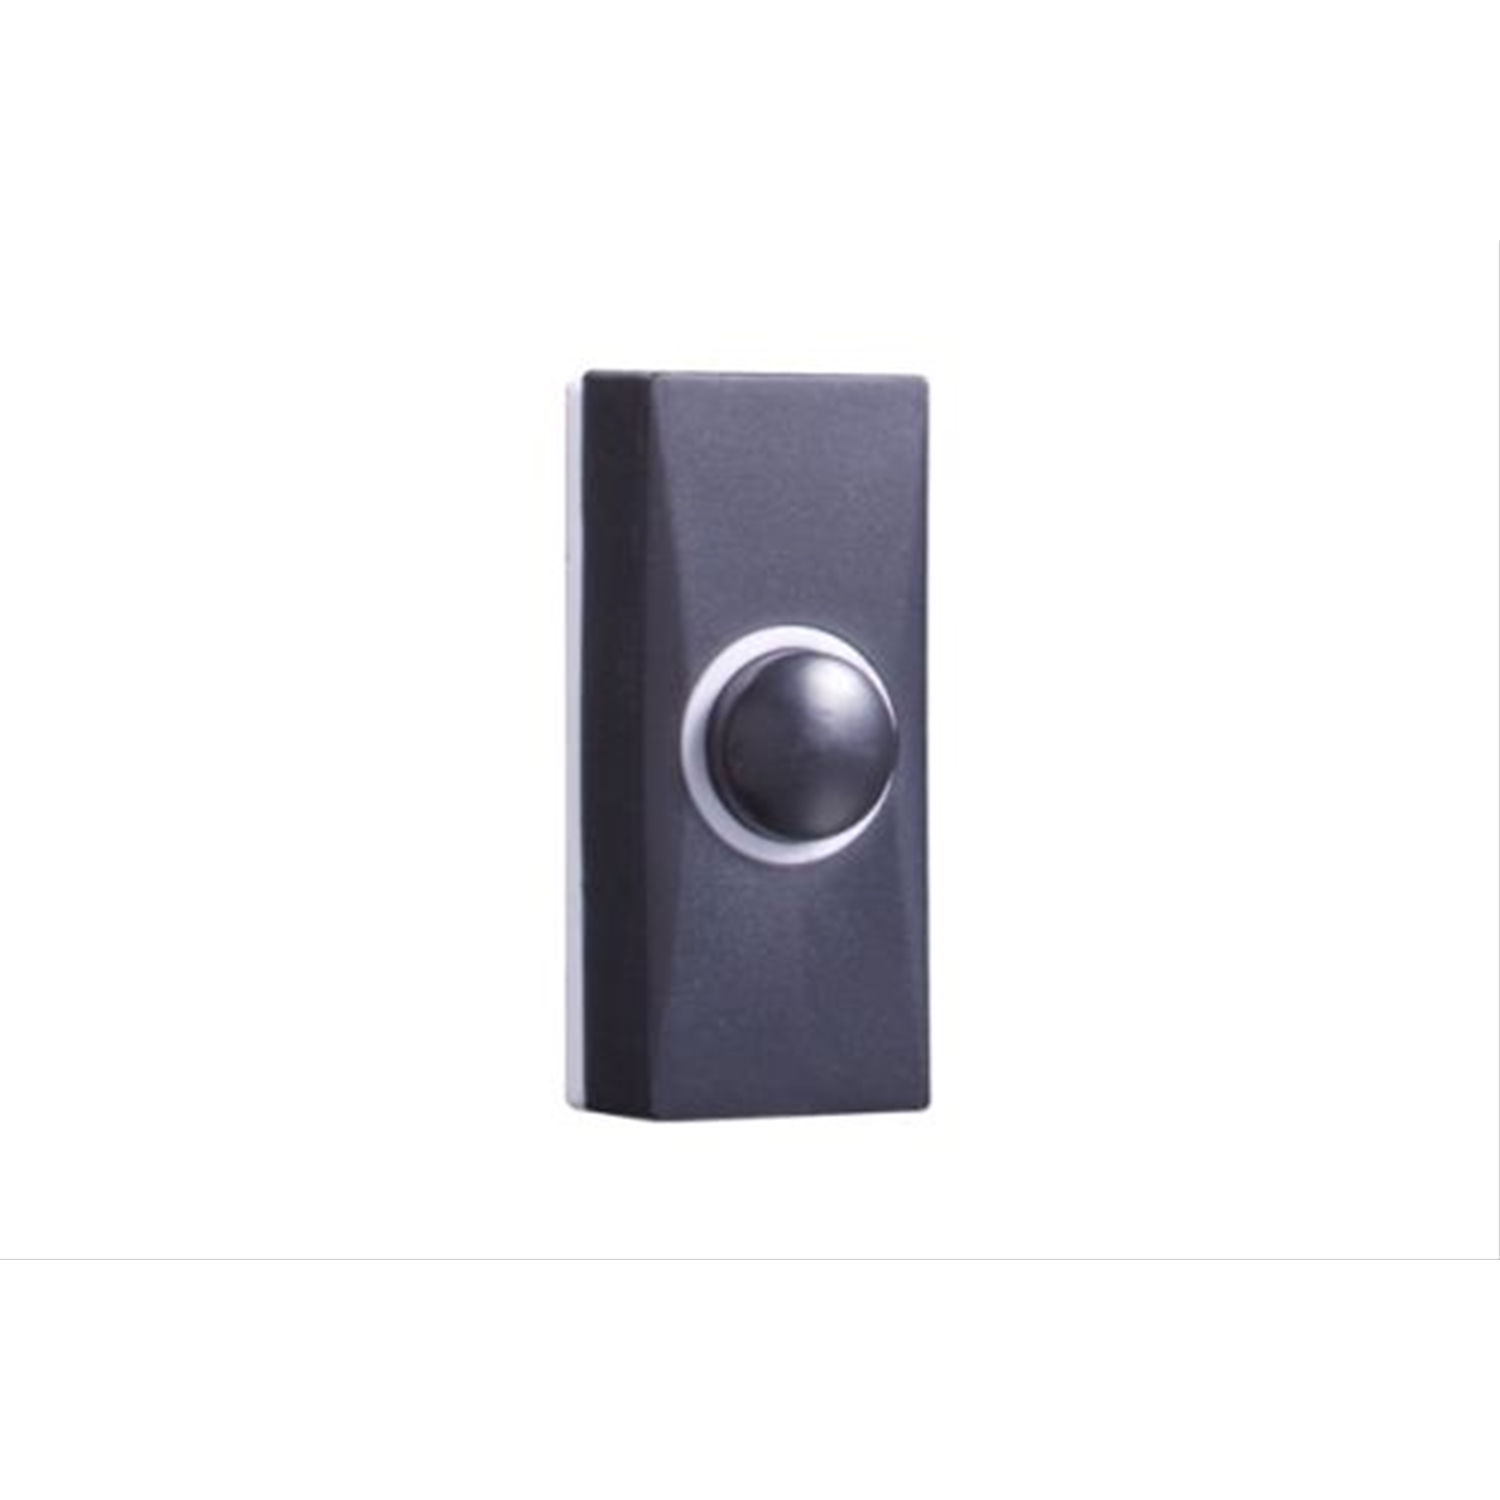 Image of Byron Wired Plastic Bell Push Black